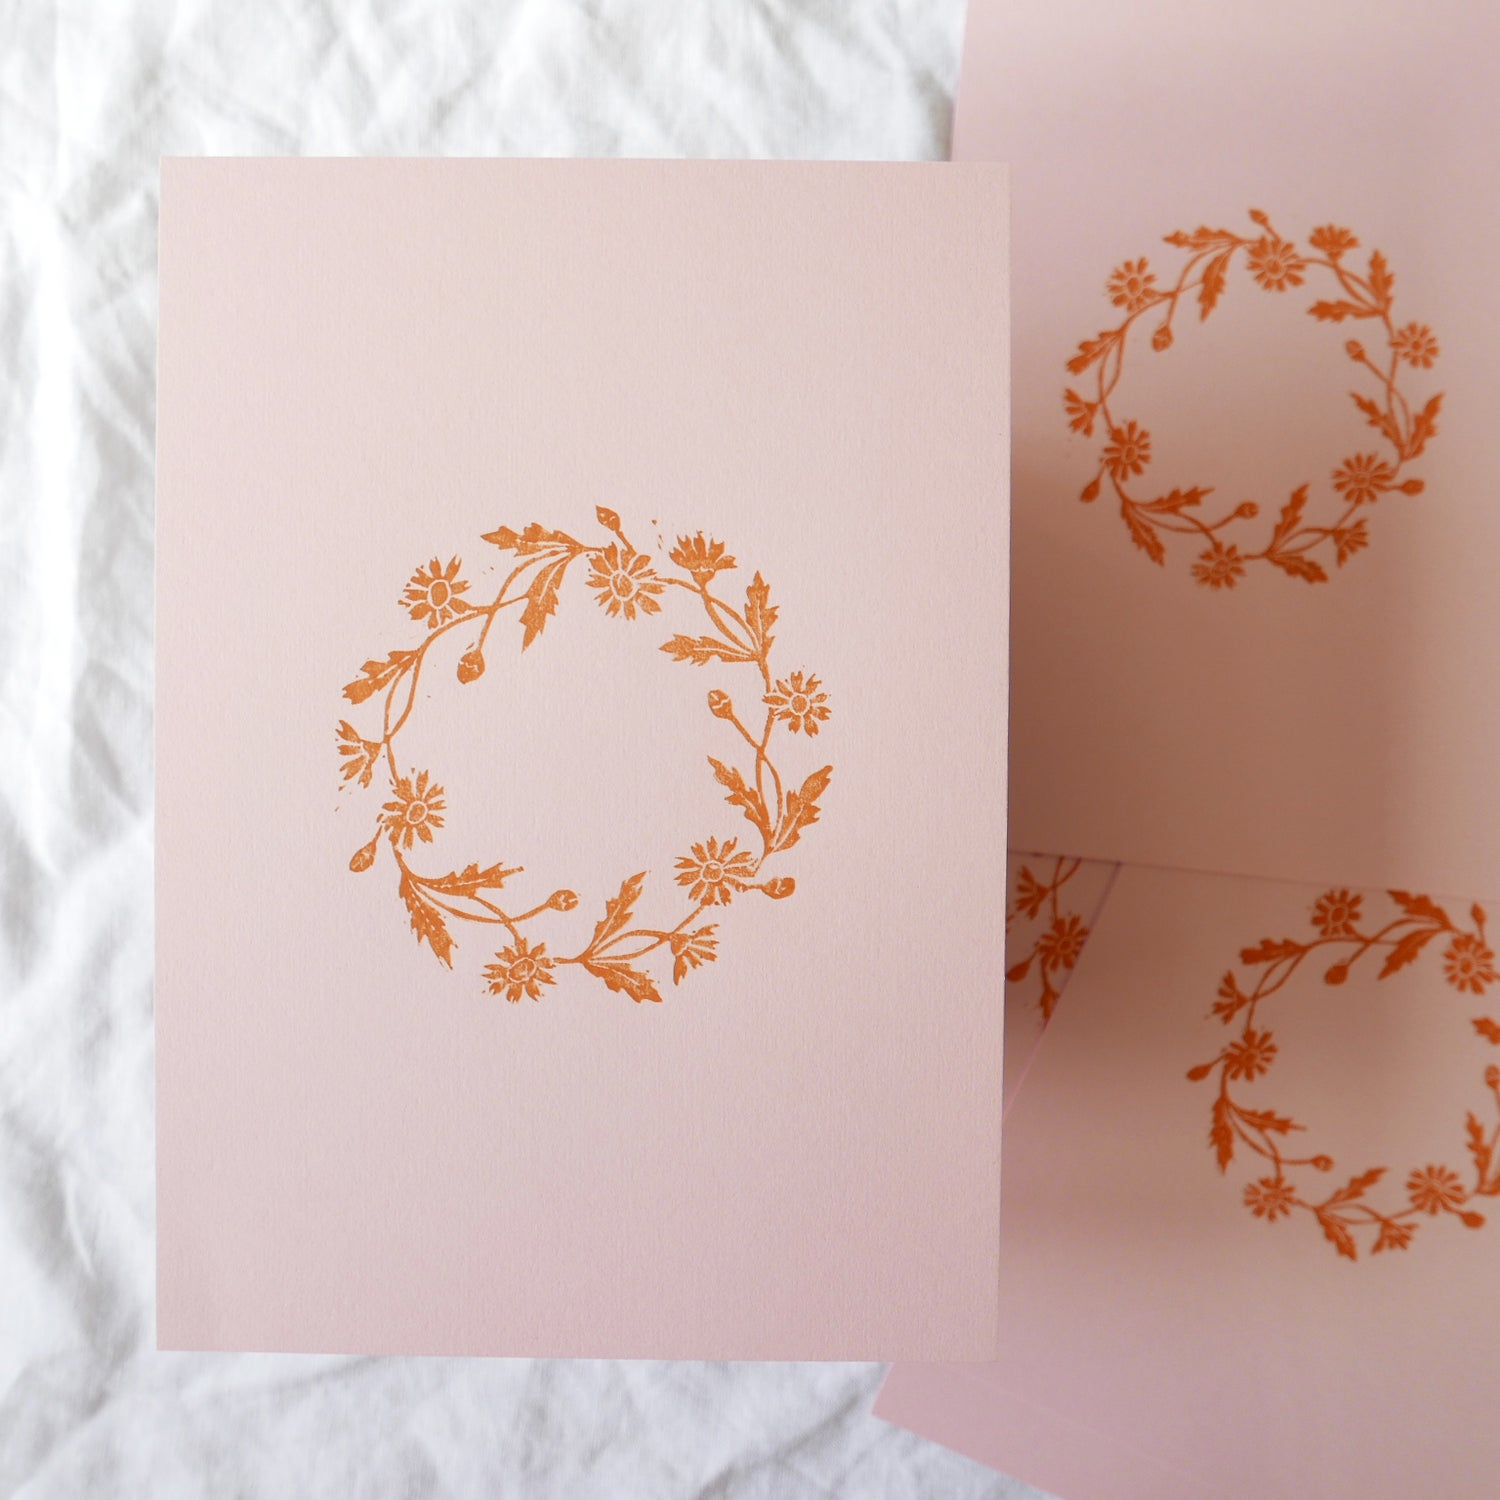 Image of Daisy Chain Linocut Print on Pink - Edition of 8